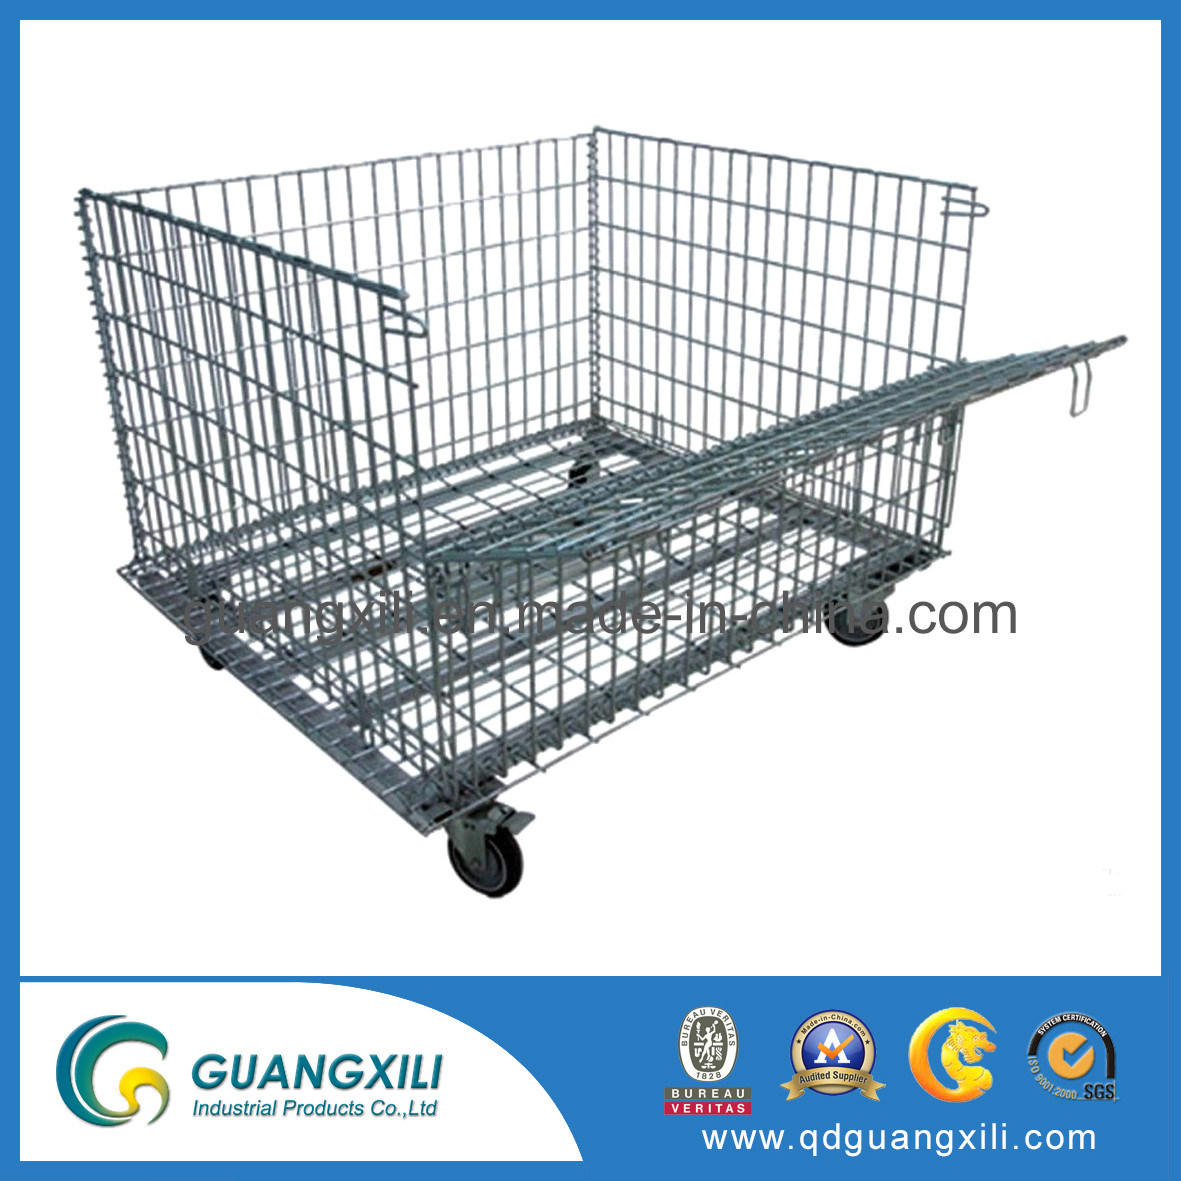 China Wire Mesh Boxes, Wire Mesh Boxes Manufacturers, Suppliers ...